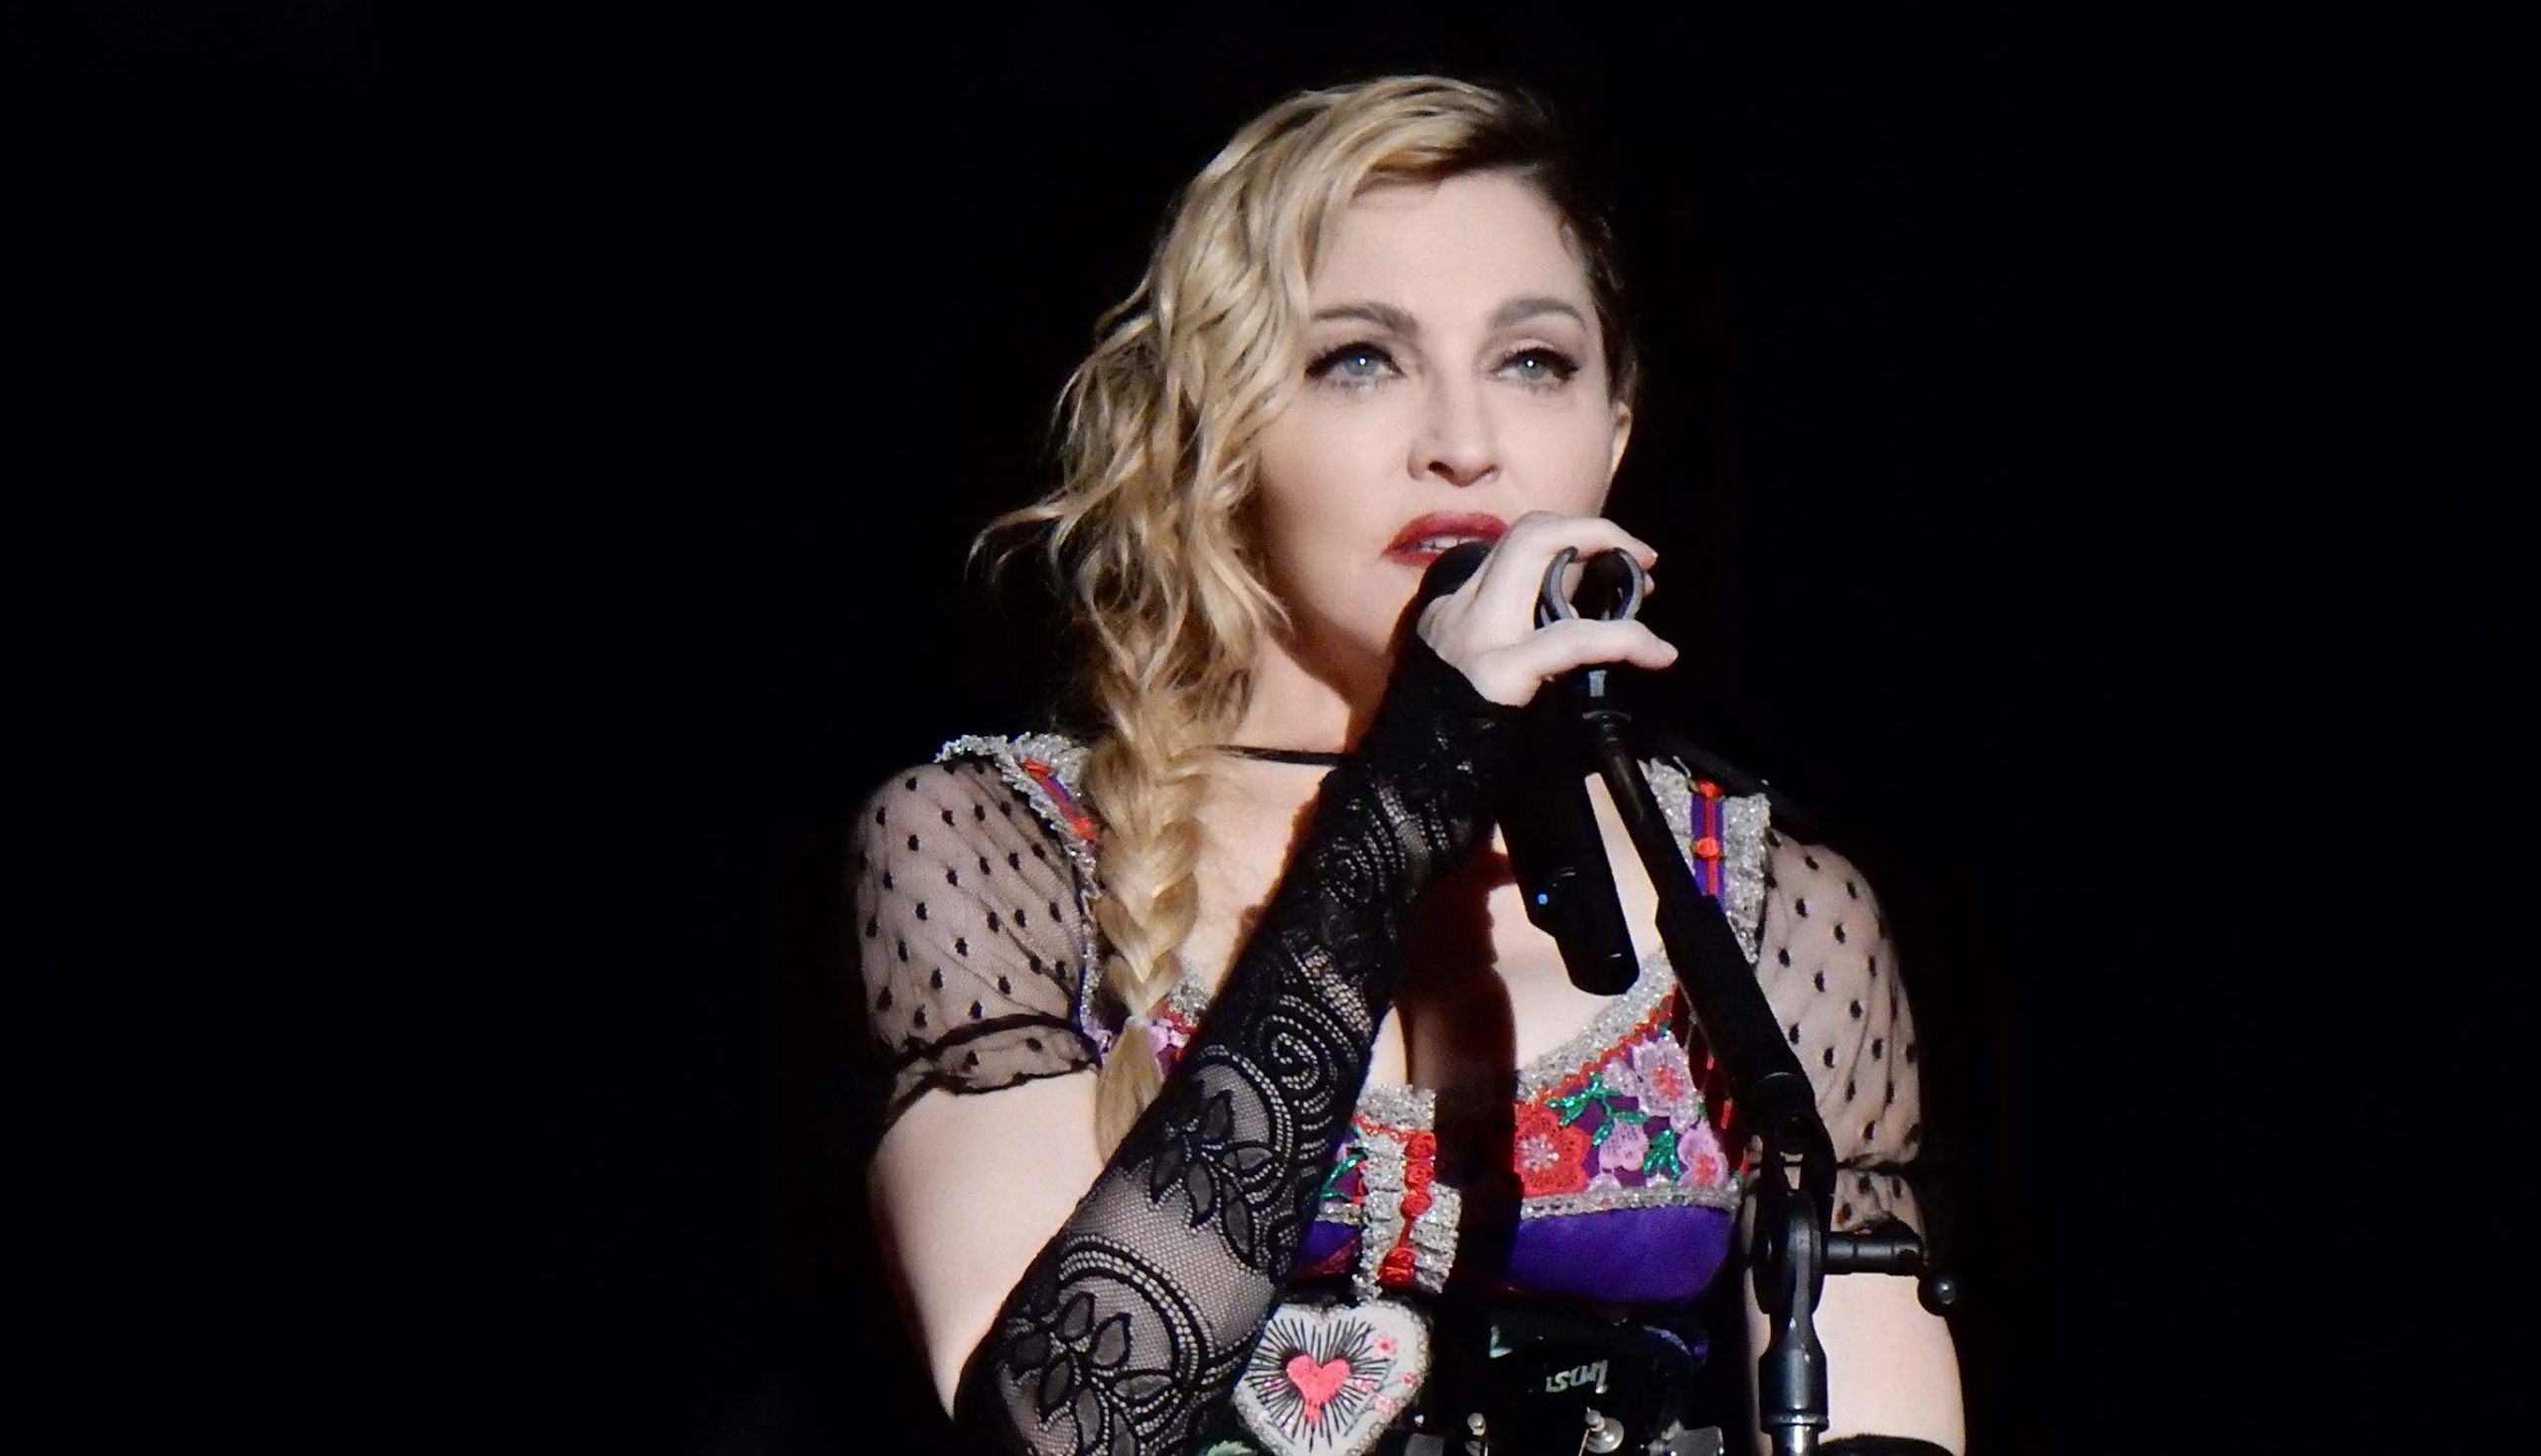 Madonna under Rebel Heart Tour 2015 i Stockholm. Foto: chrisweger via Wikimedia Commons (CC BY-SA 2.0)